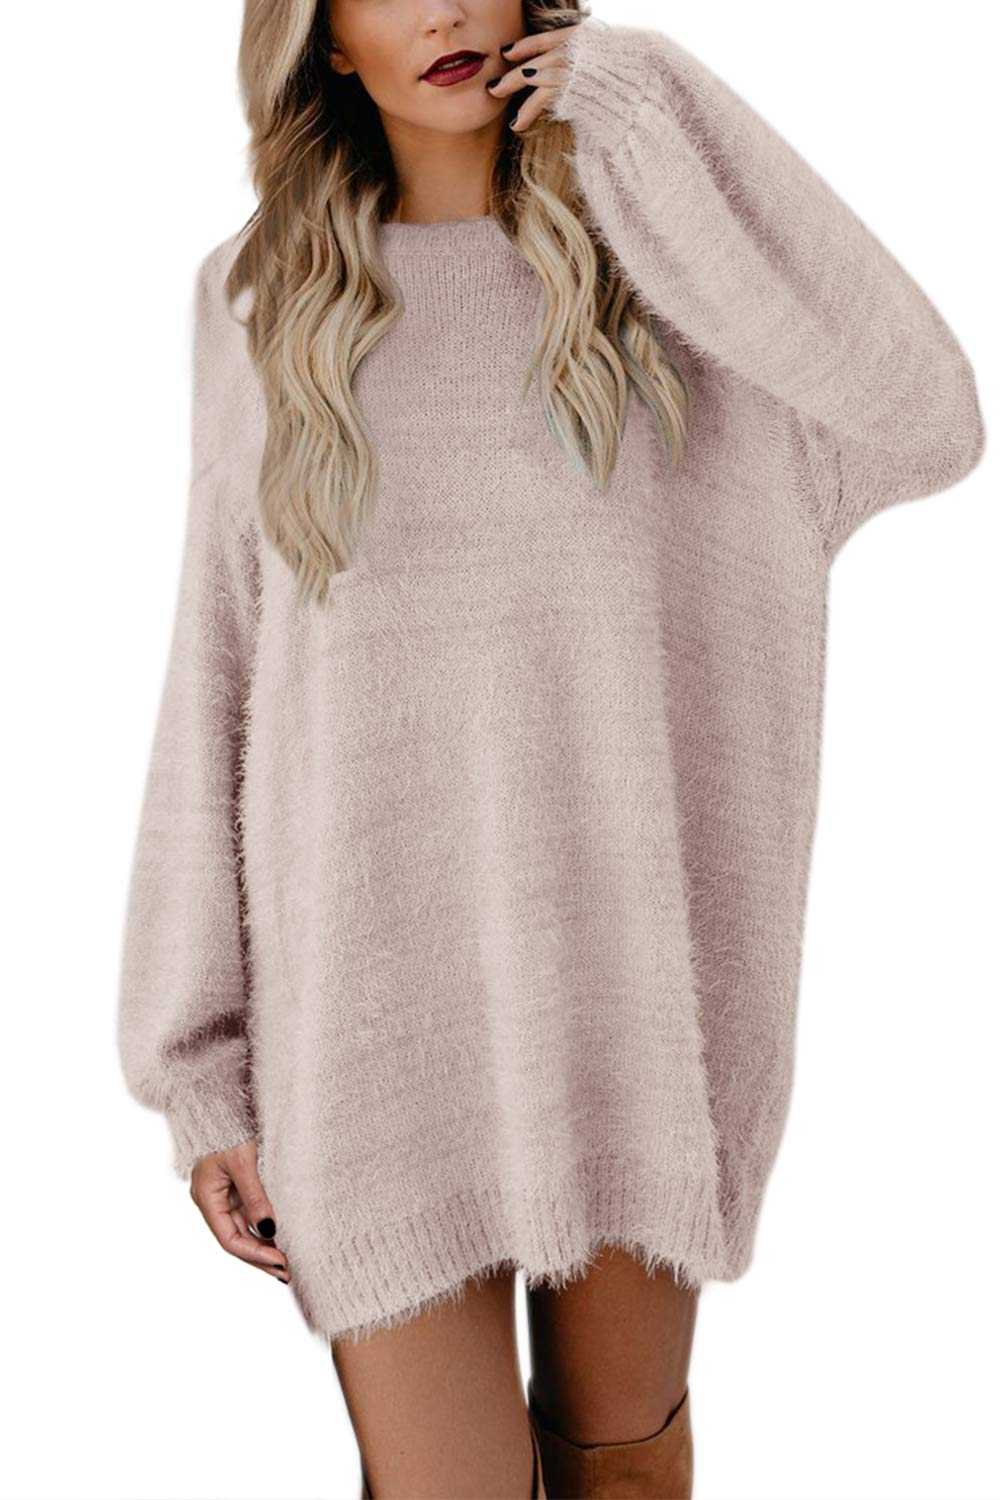 Sweater Dress - Women's Turtleneck Ribbed Elbow Long Sleeve Knit Sweater Dress